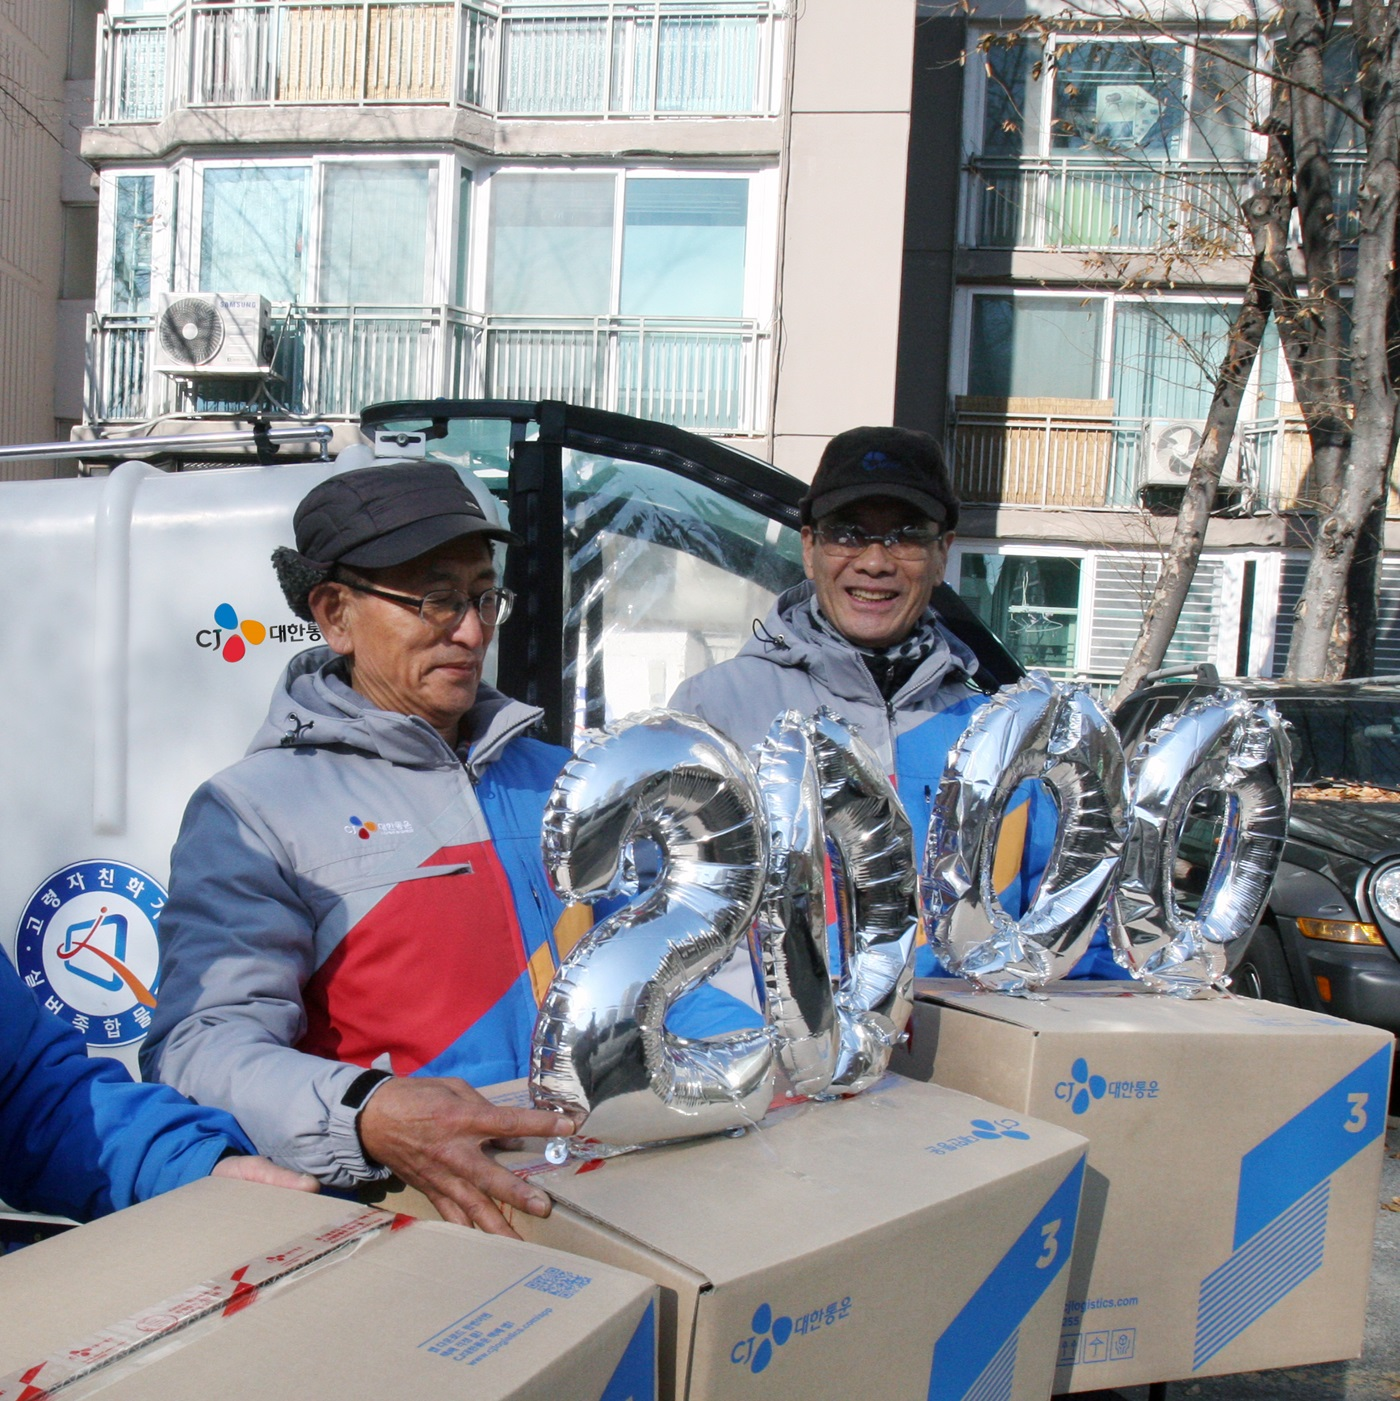 CJ Logistics' package delivery program employing seniors, started five years ago, recently made its 20 millionth delivery, the subsidiary of conglomerate CJ Group announced on December 11.